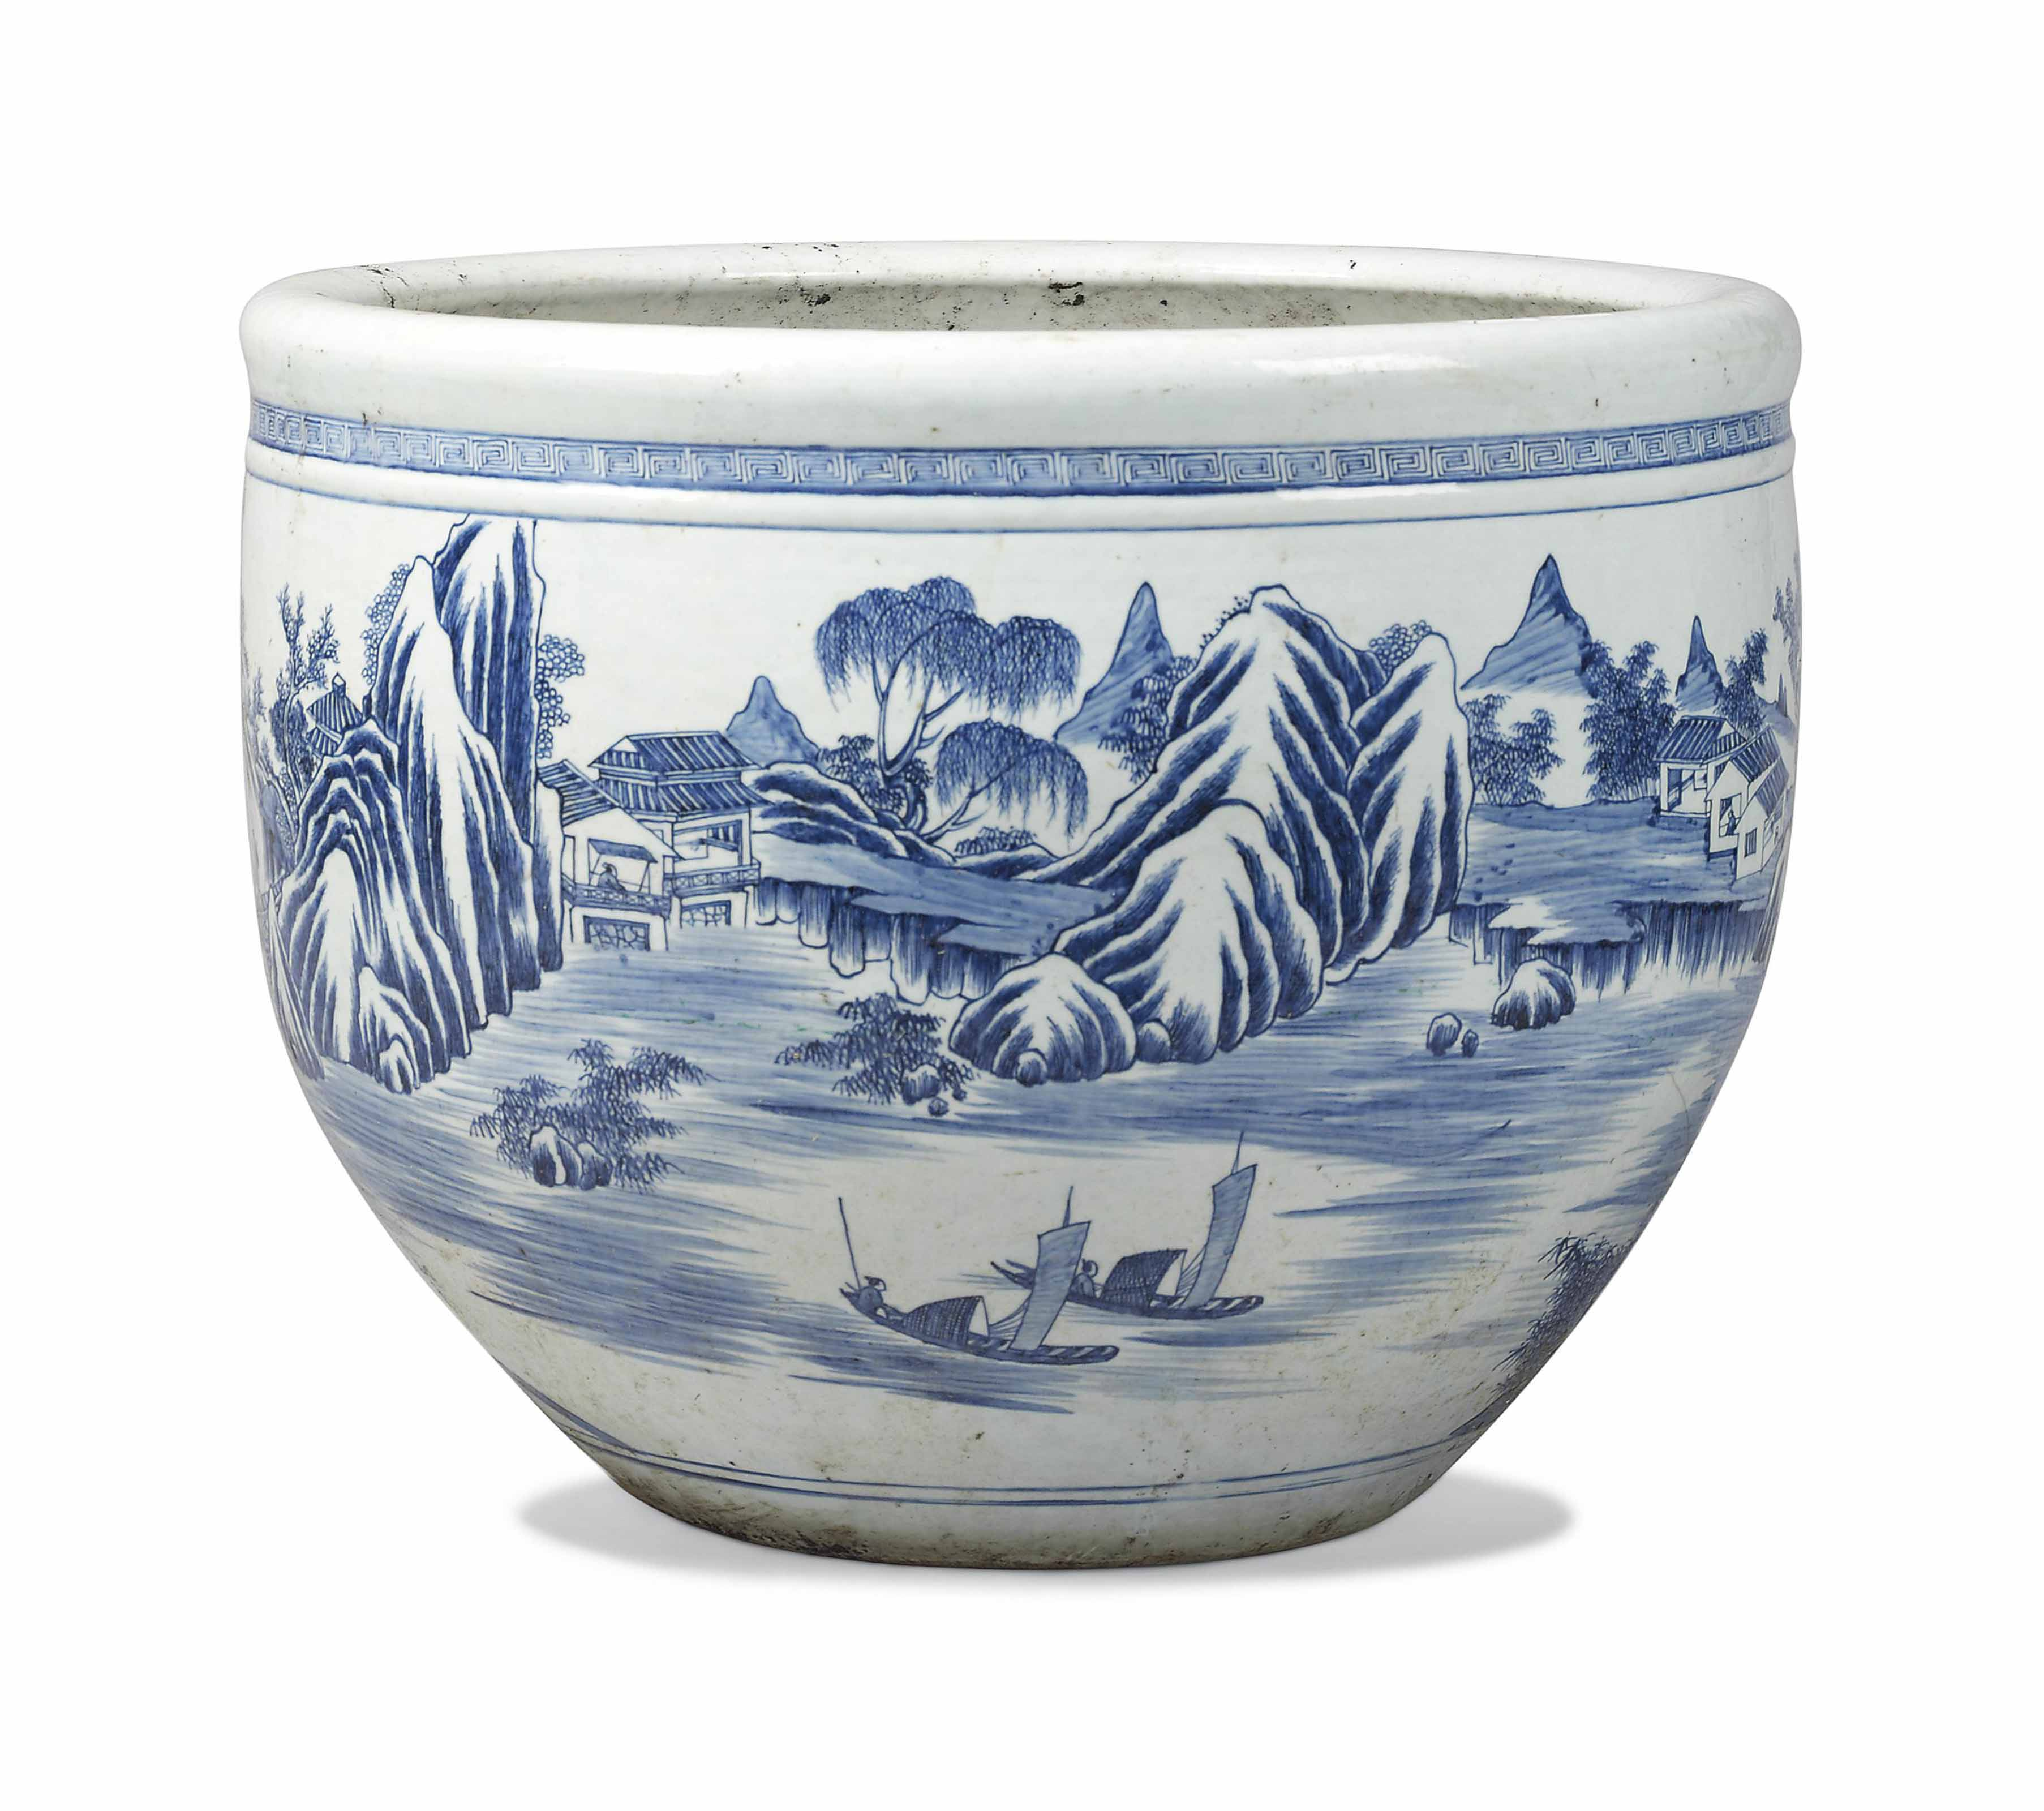 A Large Chinese Blue And White Porcelain Jardiniere 19th Century